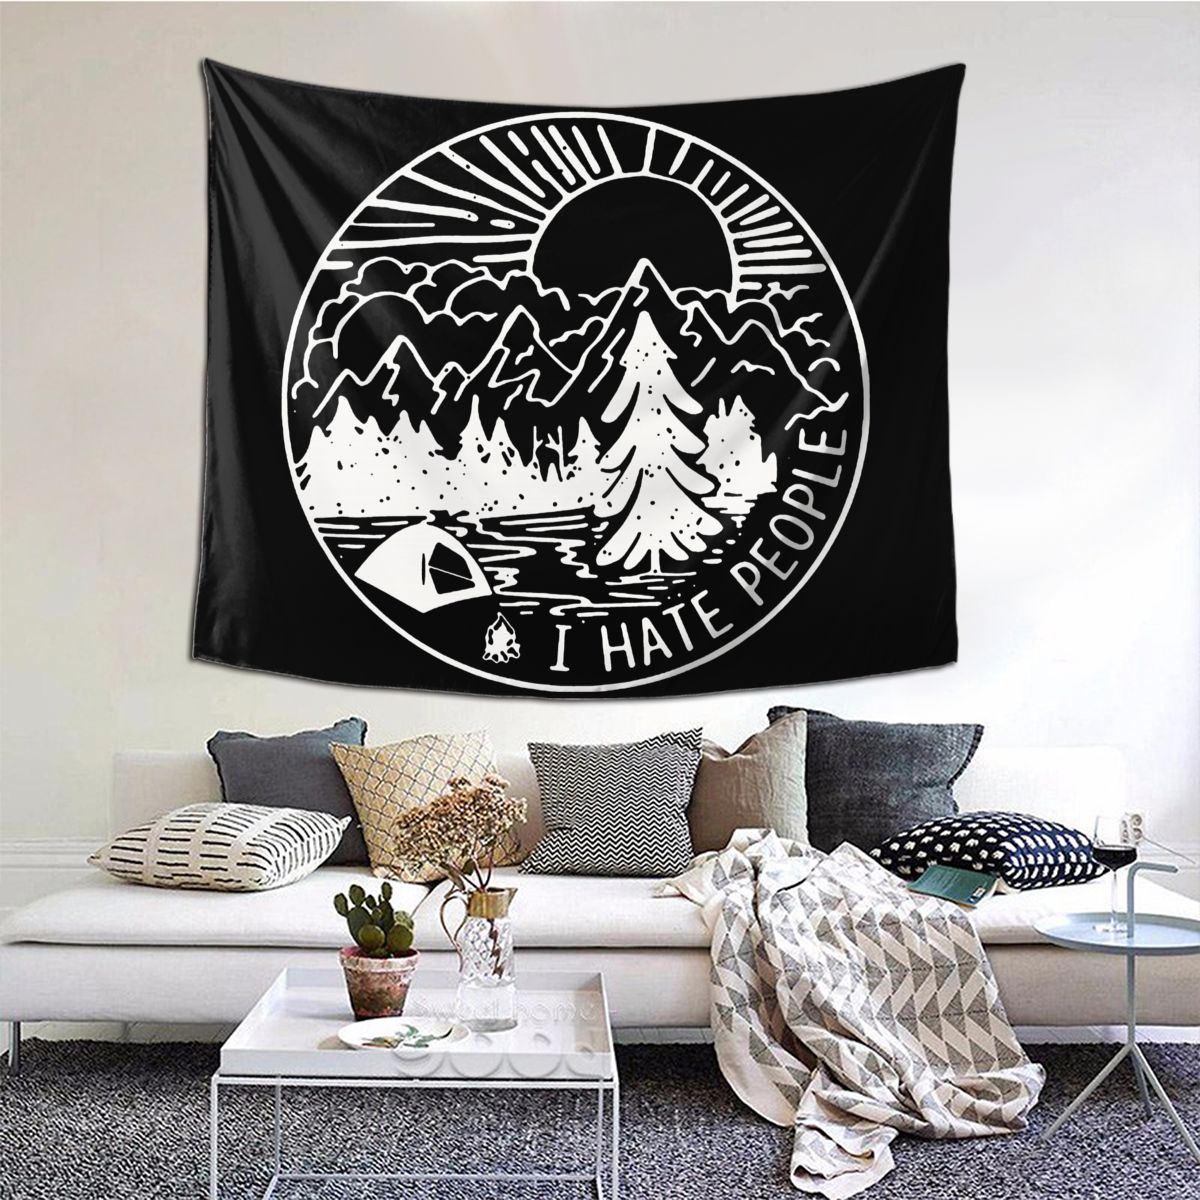 I Hate People Tapestry Hanging Tapiz Curtain Camping Campfire Camper Wall Cloth Polyester Beach Mat Unique